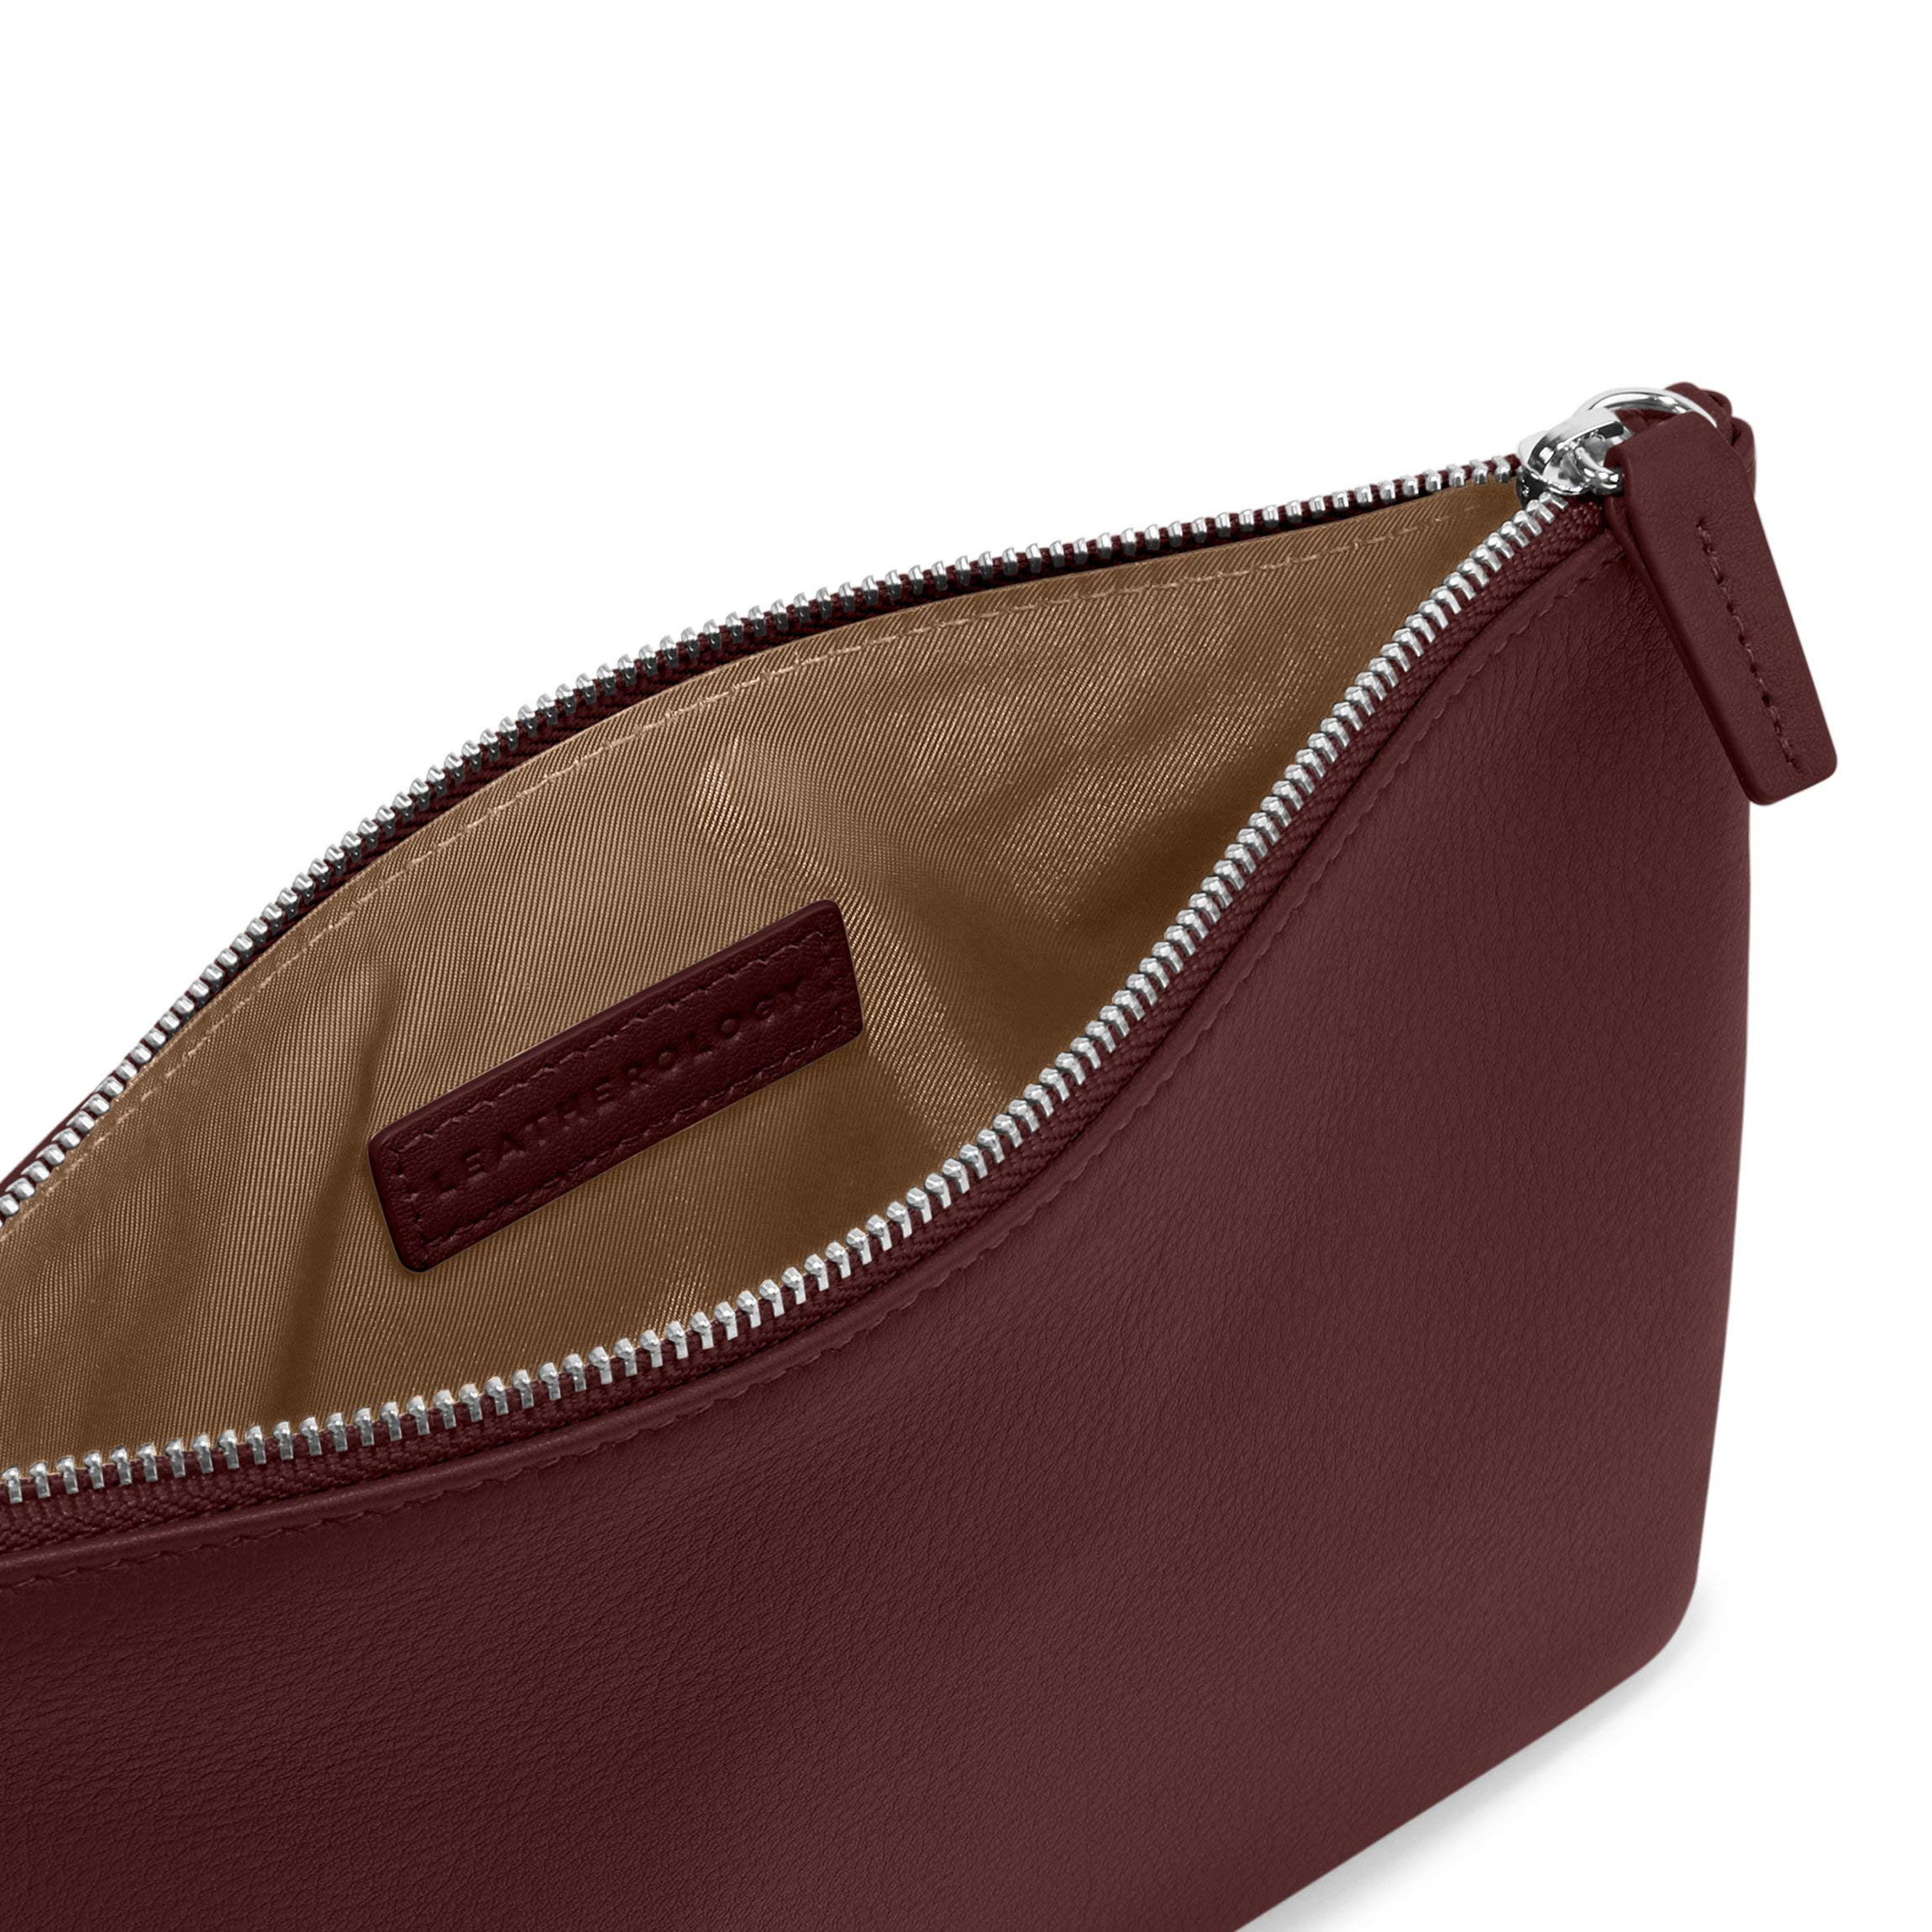 Medium Pouch - Full Grain Leather Leather - Bordeaux (Red) by Leatherology (Image #4)